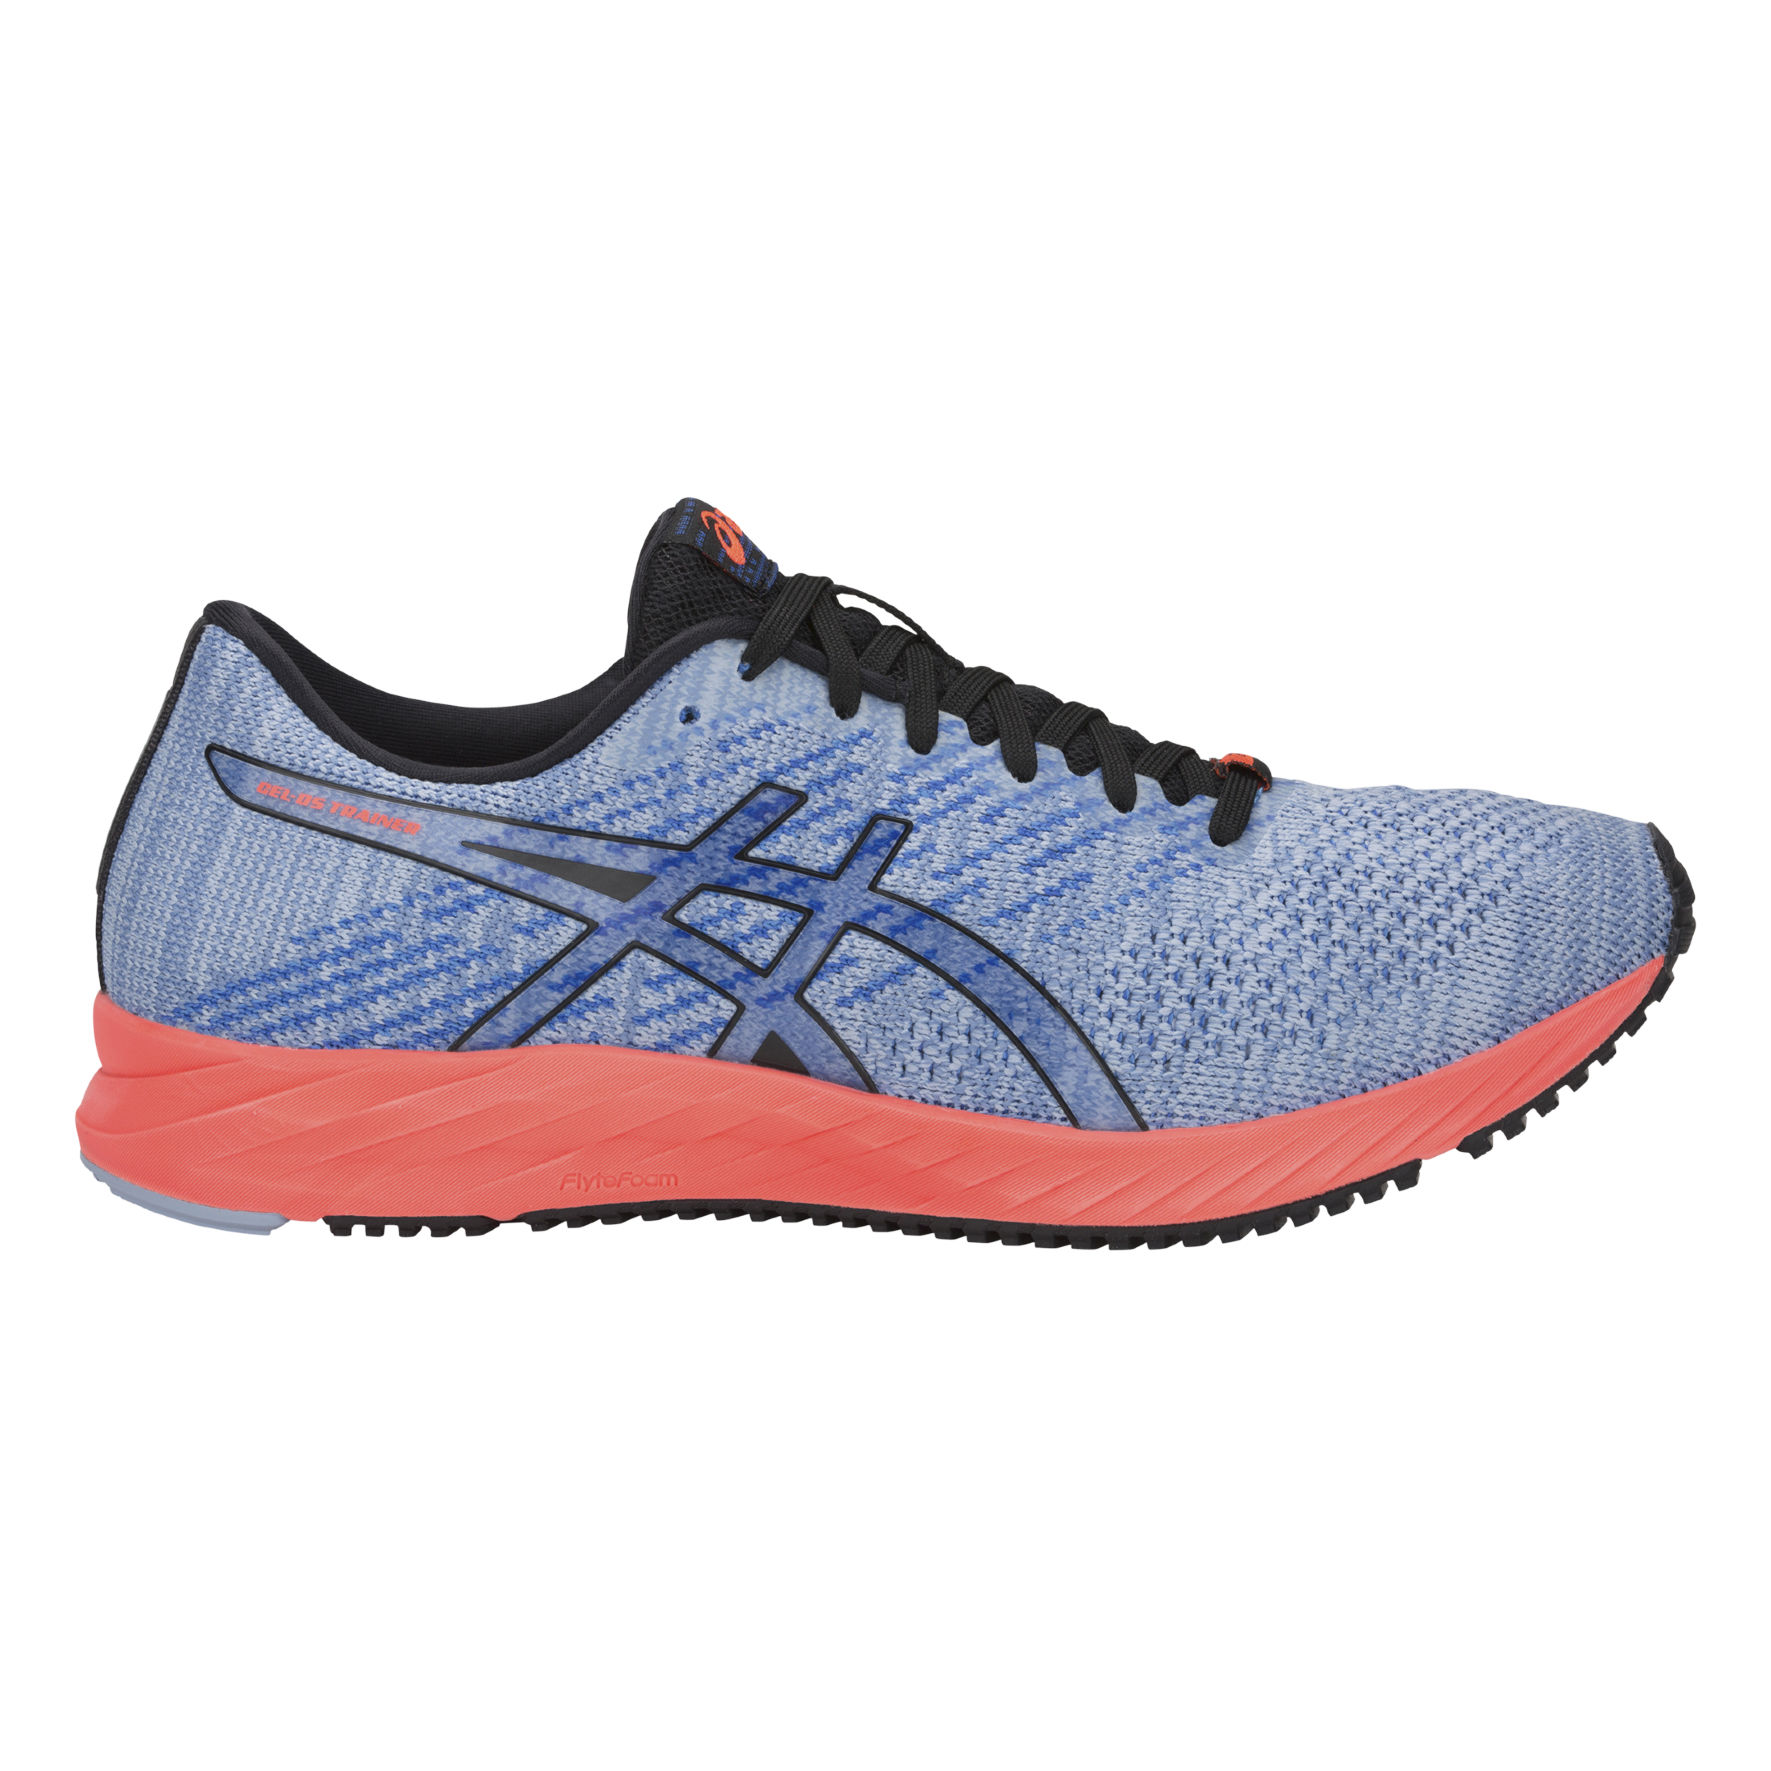 Asics Lady Gel-DS Trainer 24 in Blau Orange